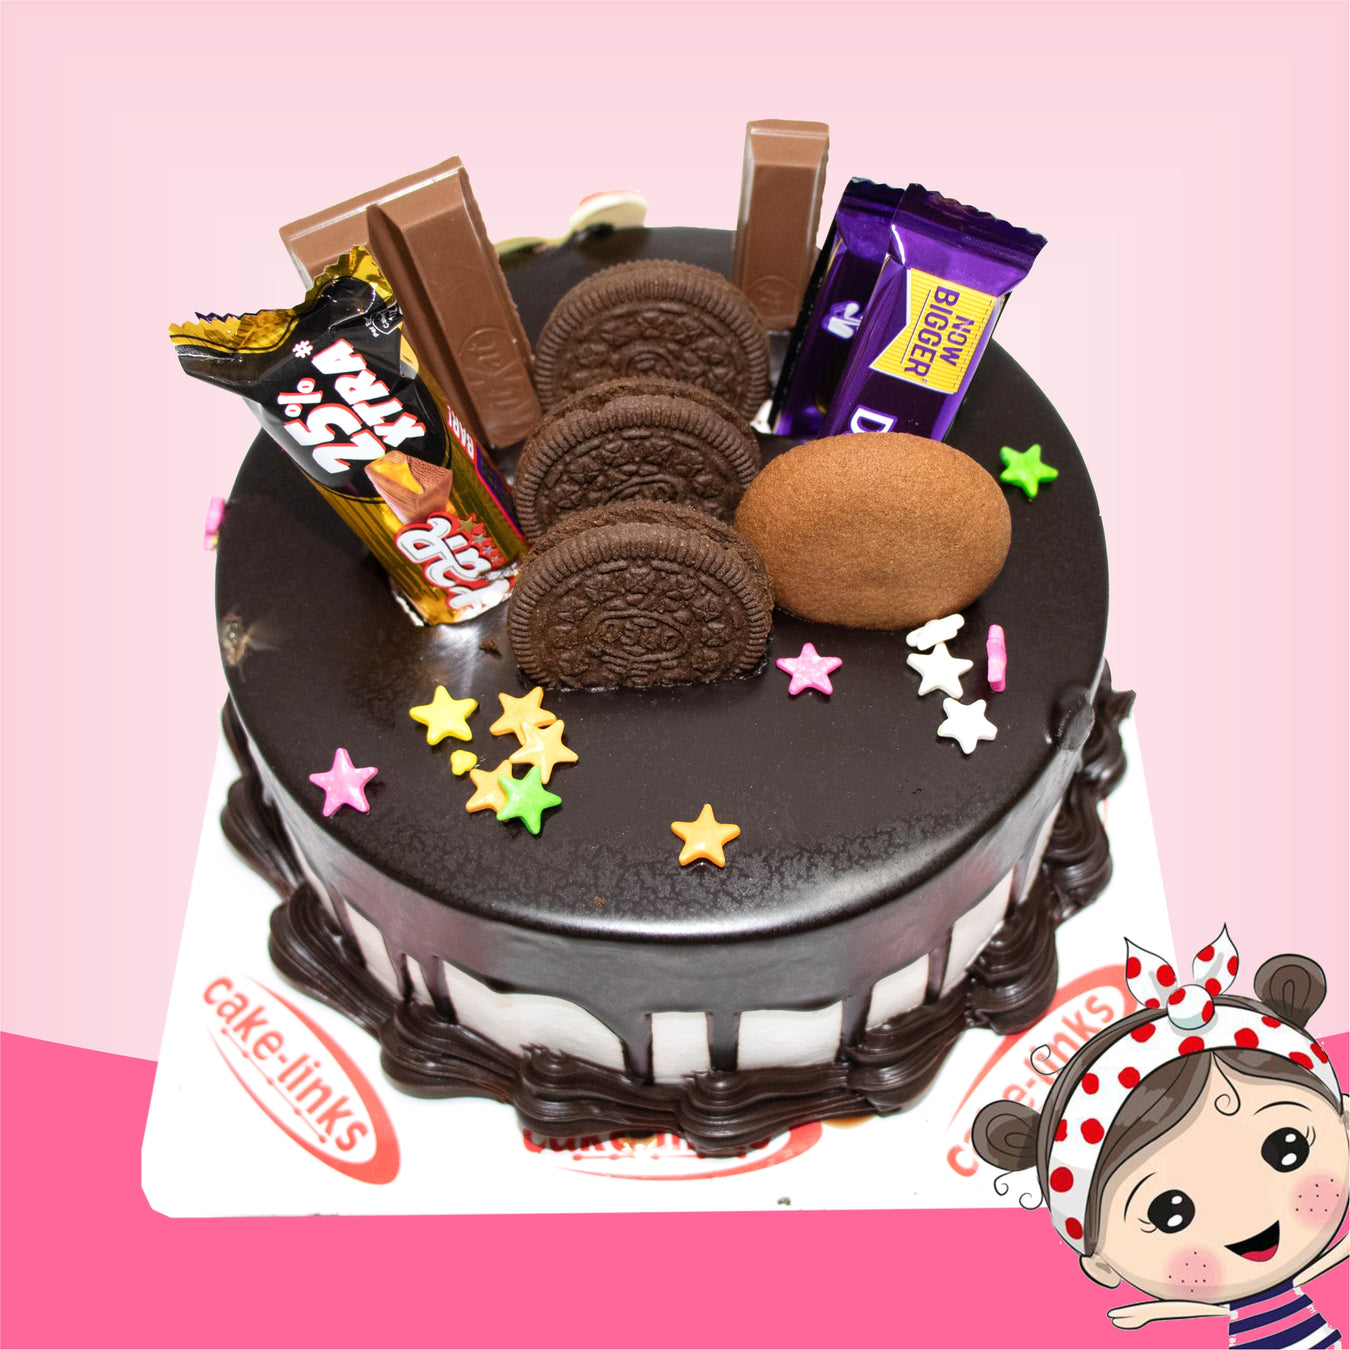 Online Cakes Home Delivery Fresh Eggless Cakes Order Now Cake Links